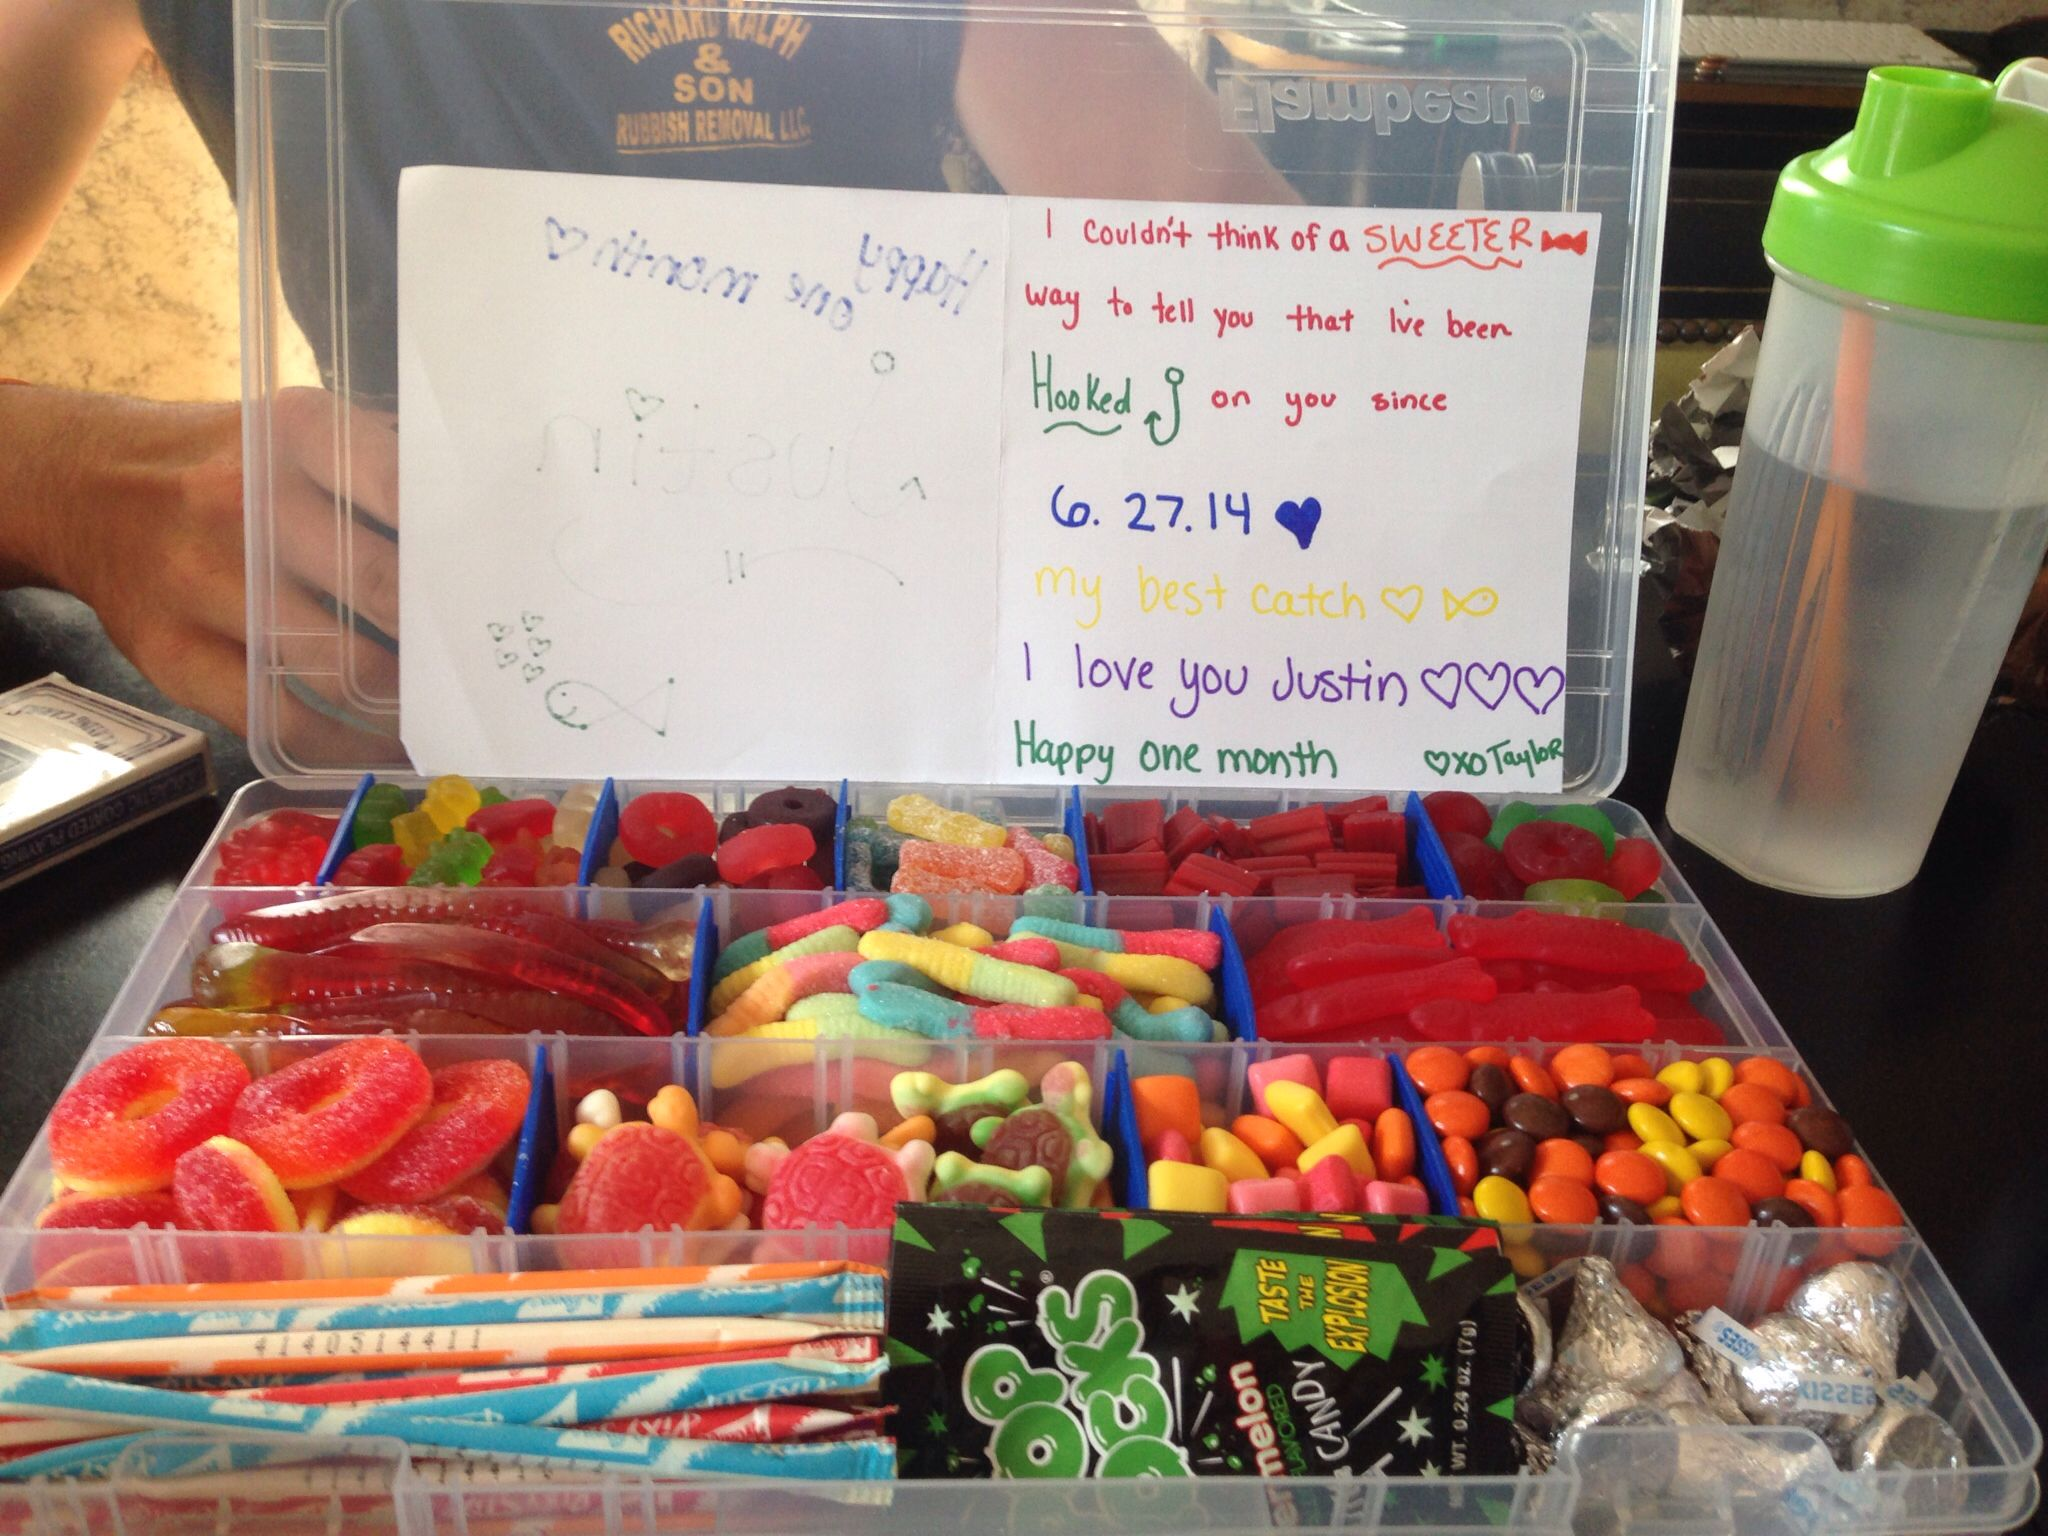 Candy tackle box for the best my fisherman boyfriend got